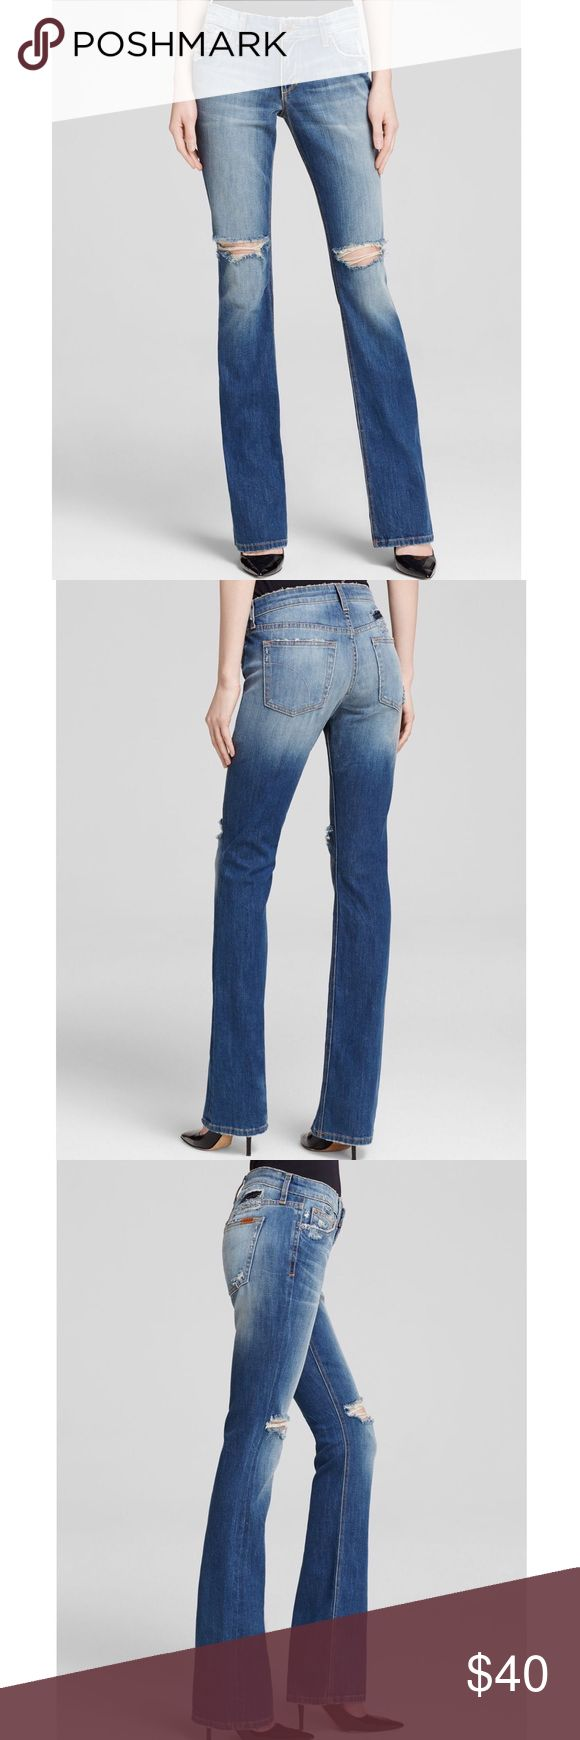 """Joe's Jeans The Vixen Bootcut Jeans Joe's Jeans 'The Vixen' Bootcut Jeans in Celeste. Size 23. Mid-rise fit. Contrast stitching, copper-tone hardware, faded, whiskered, distressed. Retail $179  Waist - 24"""" Rise - 7"""" Inseam - 33"""" Joe's Jeans Jeans Boot Cut"""